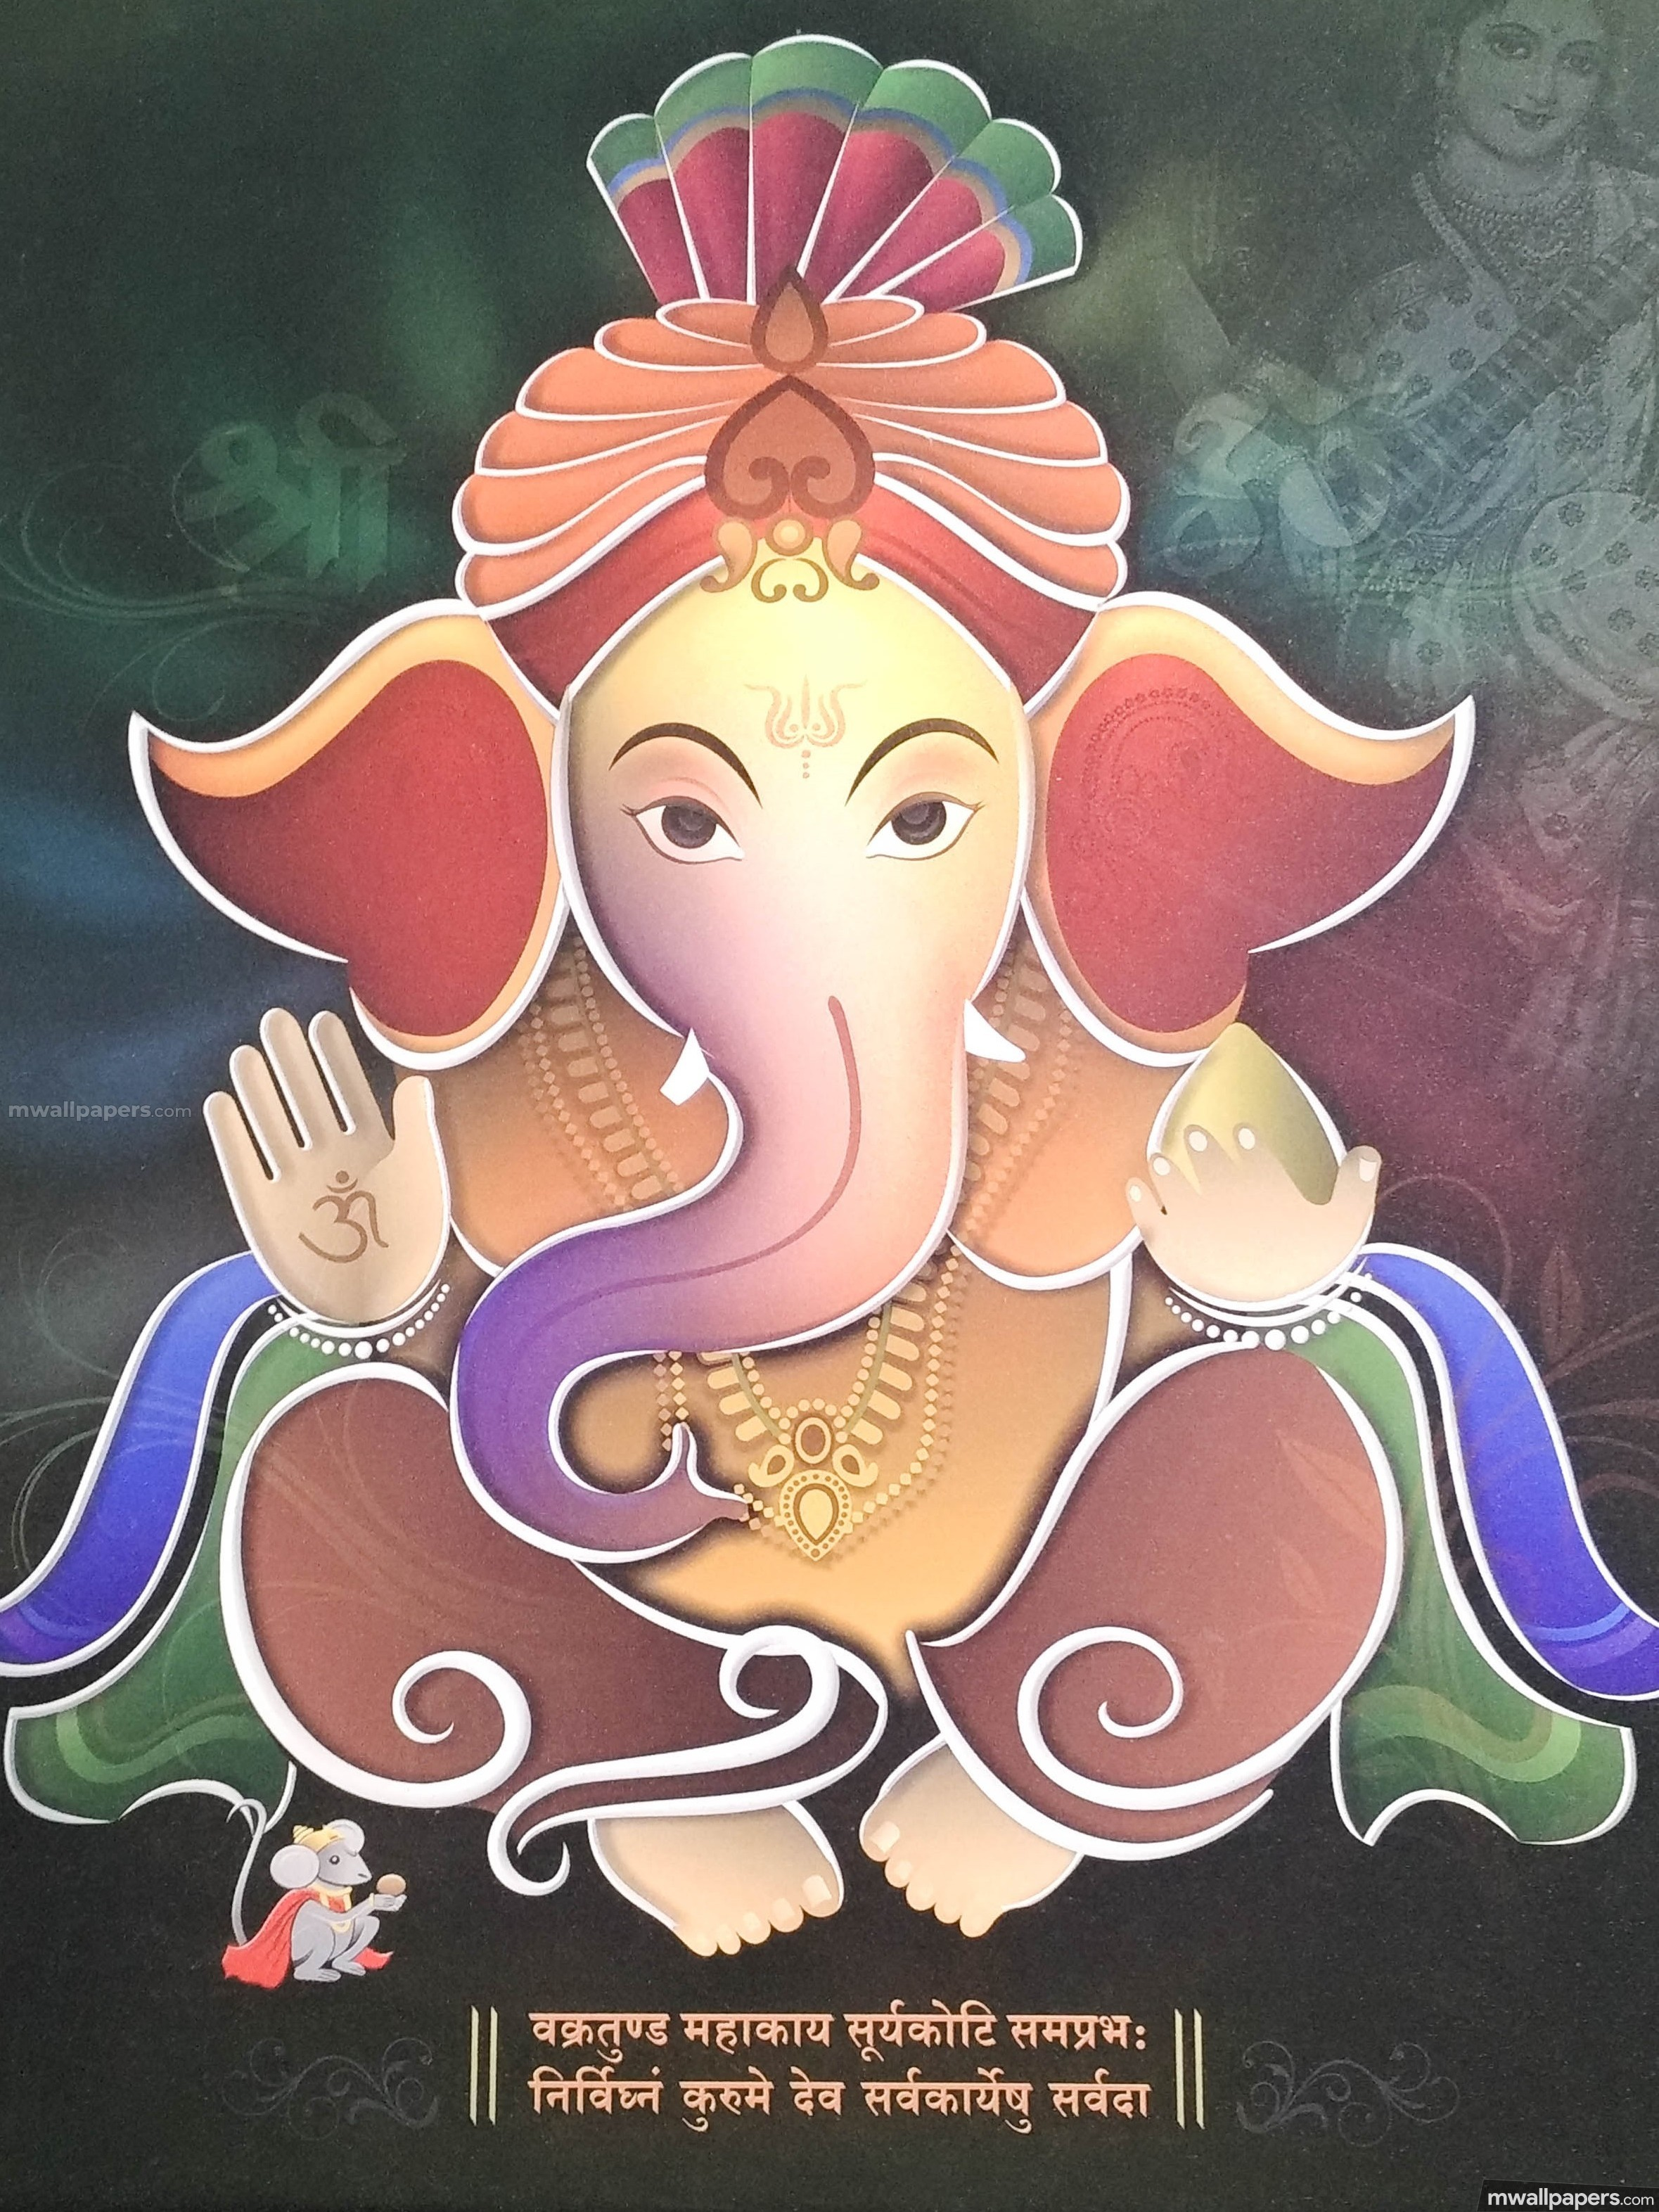 🌺 *Best* Lord Ganesha (Vinayagar, Pillaiyar) HD Image / Wallpaper - Ganesh Chaturthi (13 September 2018) (19034) - ganesha, vinayaga, vinayagar, pillaiyar, pillayar, lord ganesha, ganesh chaturthi